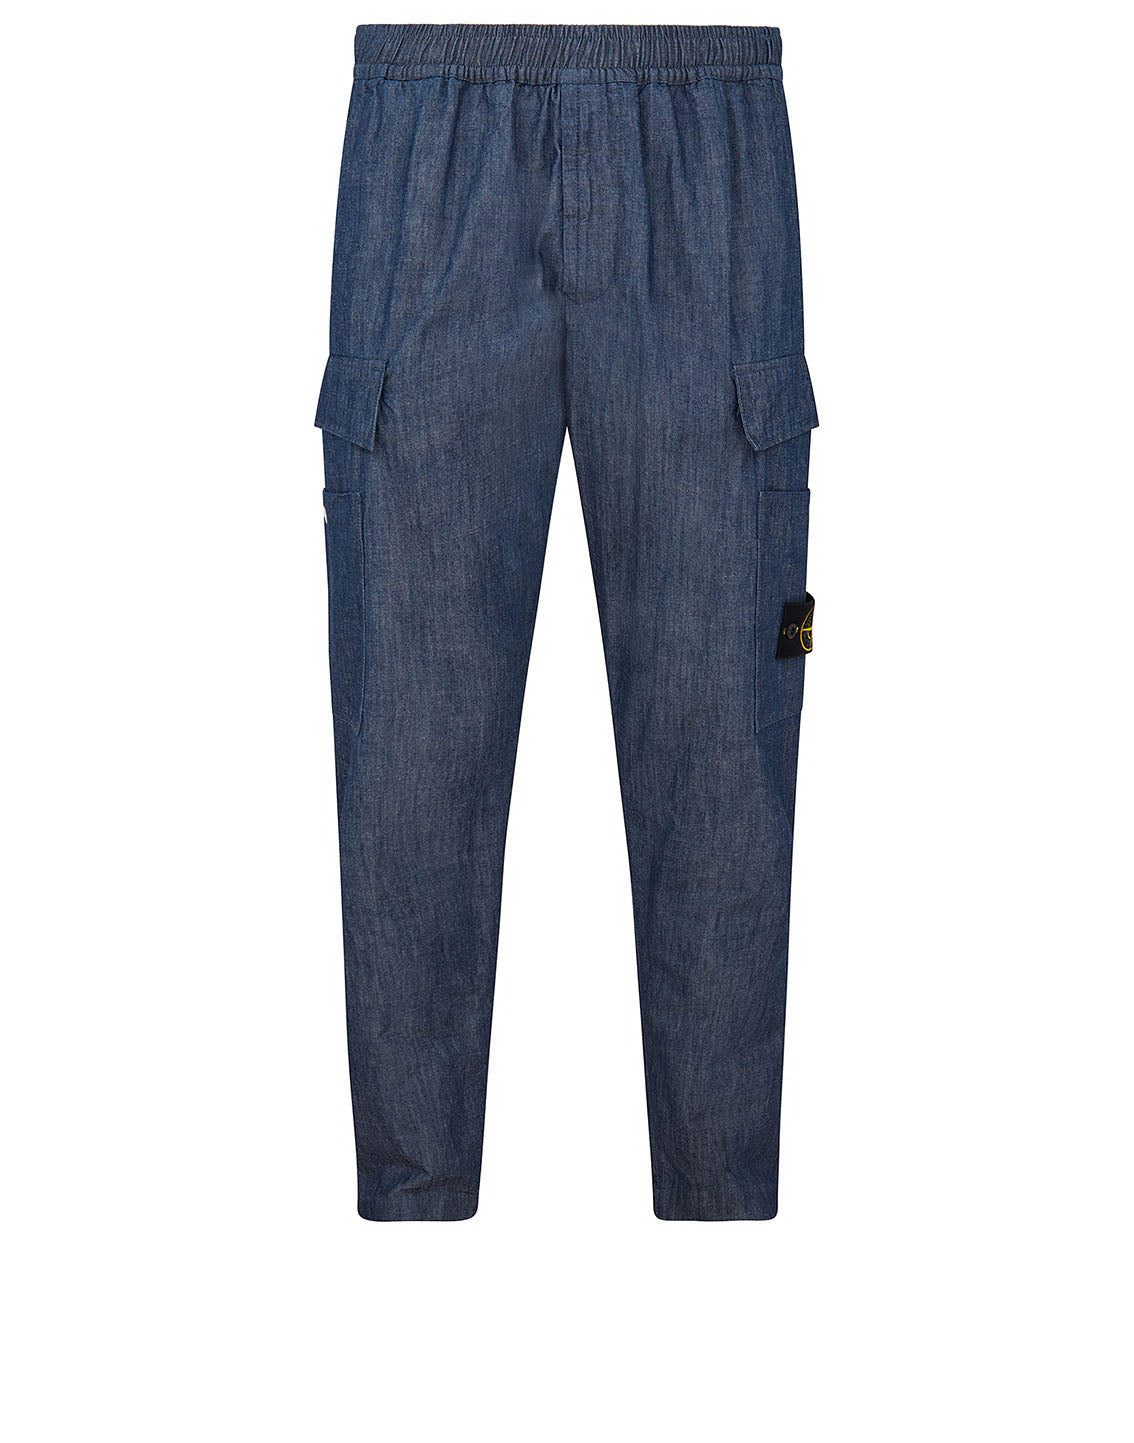 31107 CHAMBRAY CANVAS Pants in Blue